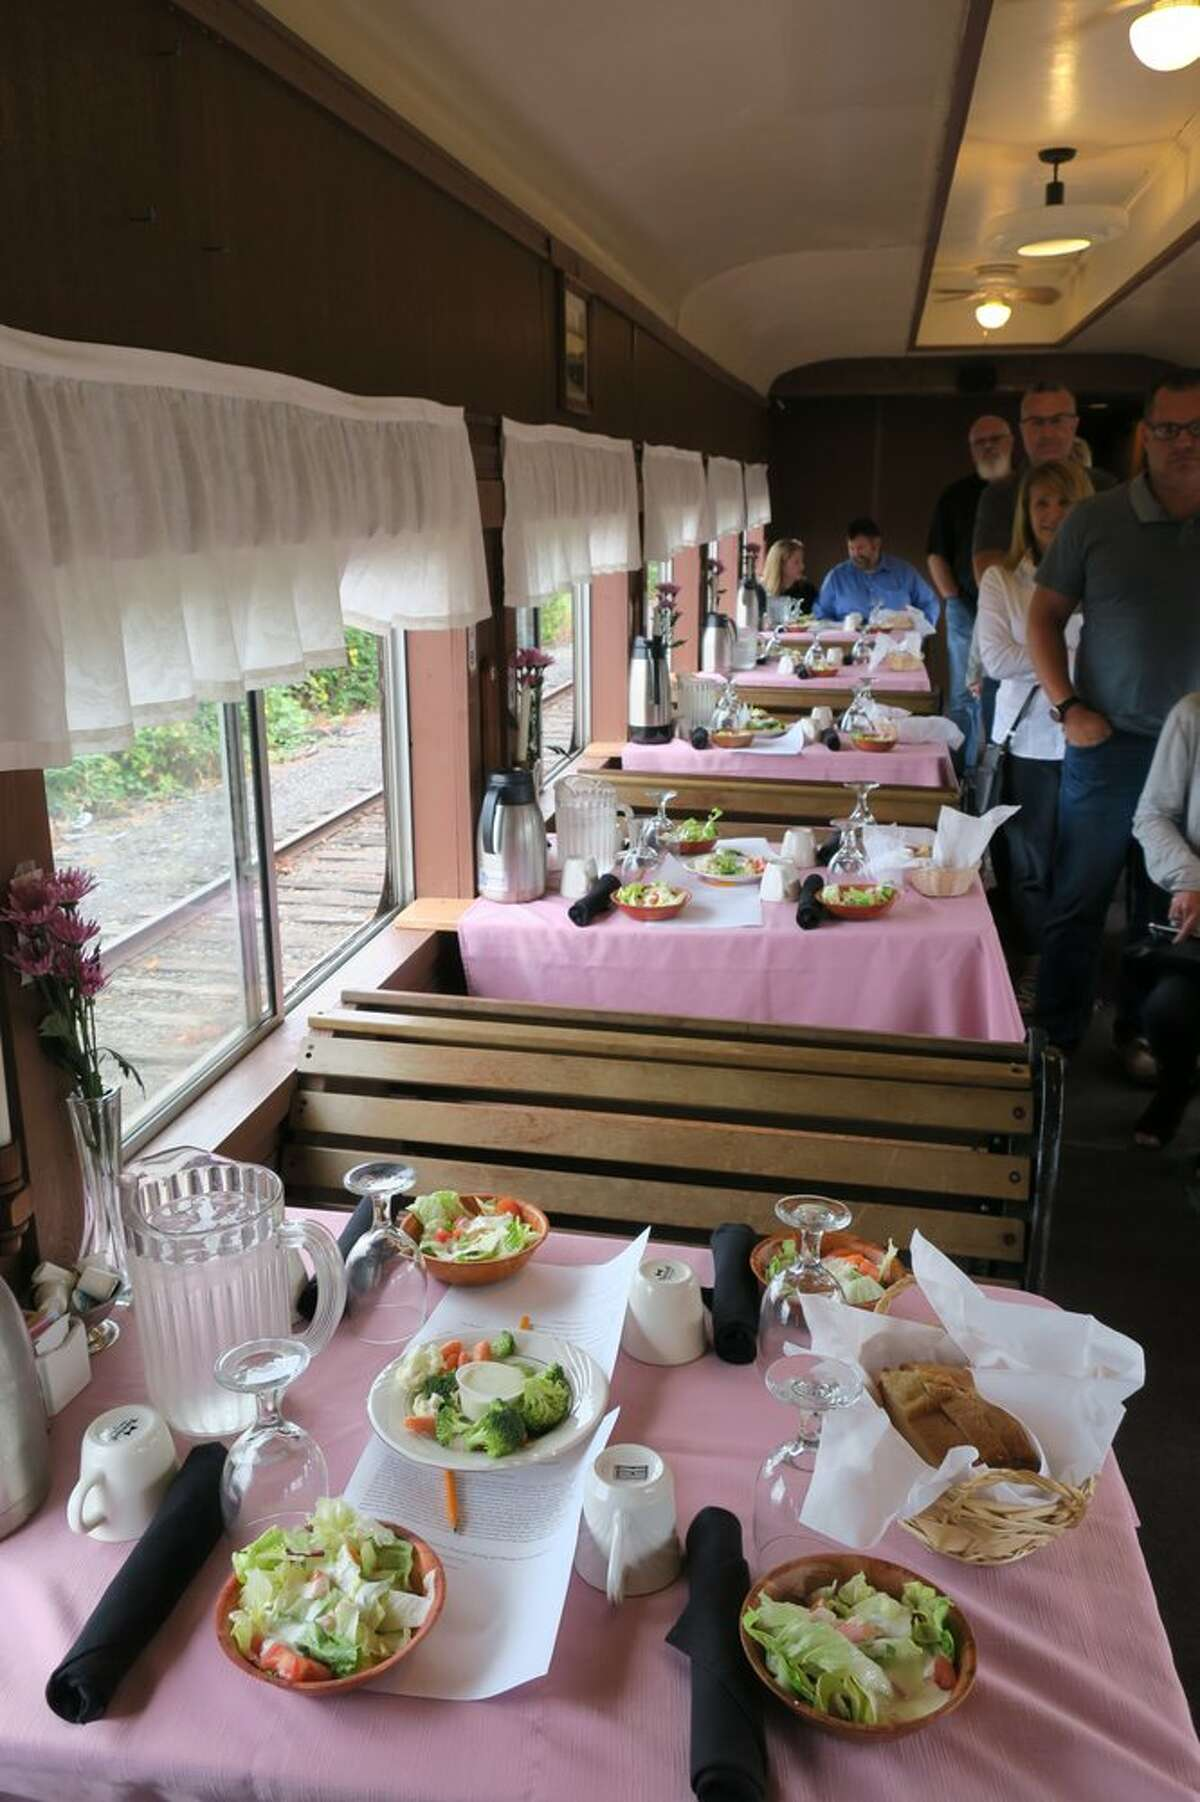 The Chehalis Centralia Railroad and Museum recently announced its season start date, inviting friends, families, and railroad aficionados to nab their reservations aboard for weekend excursion on Saturday, June 20, or Sunday, June 21.